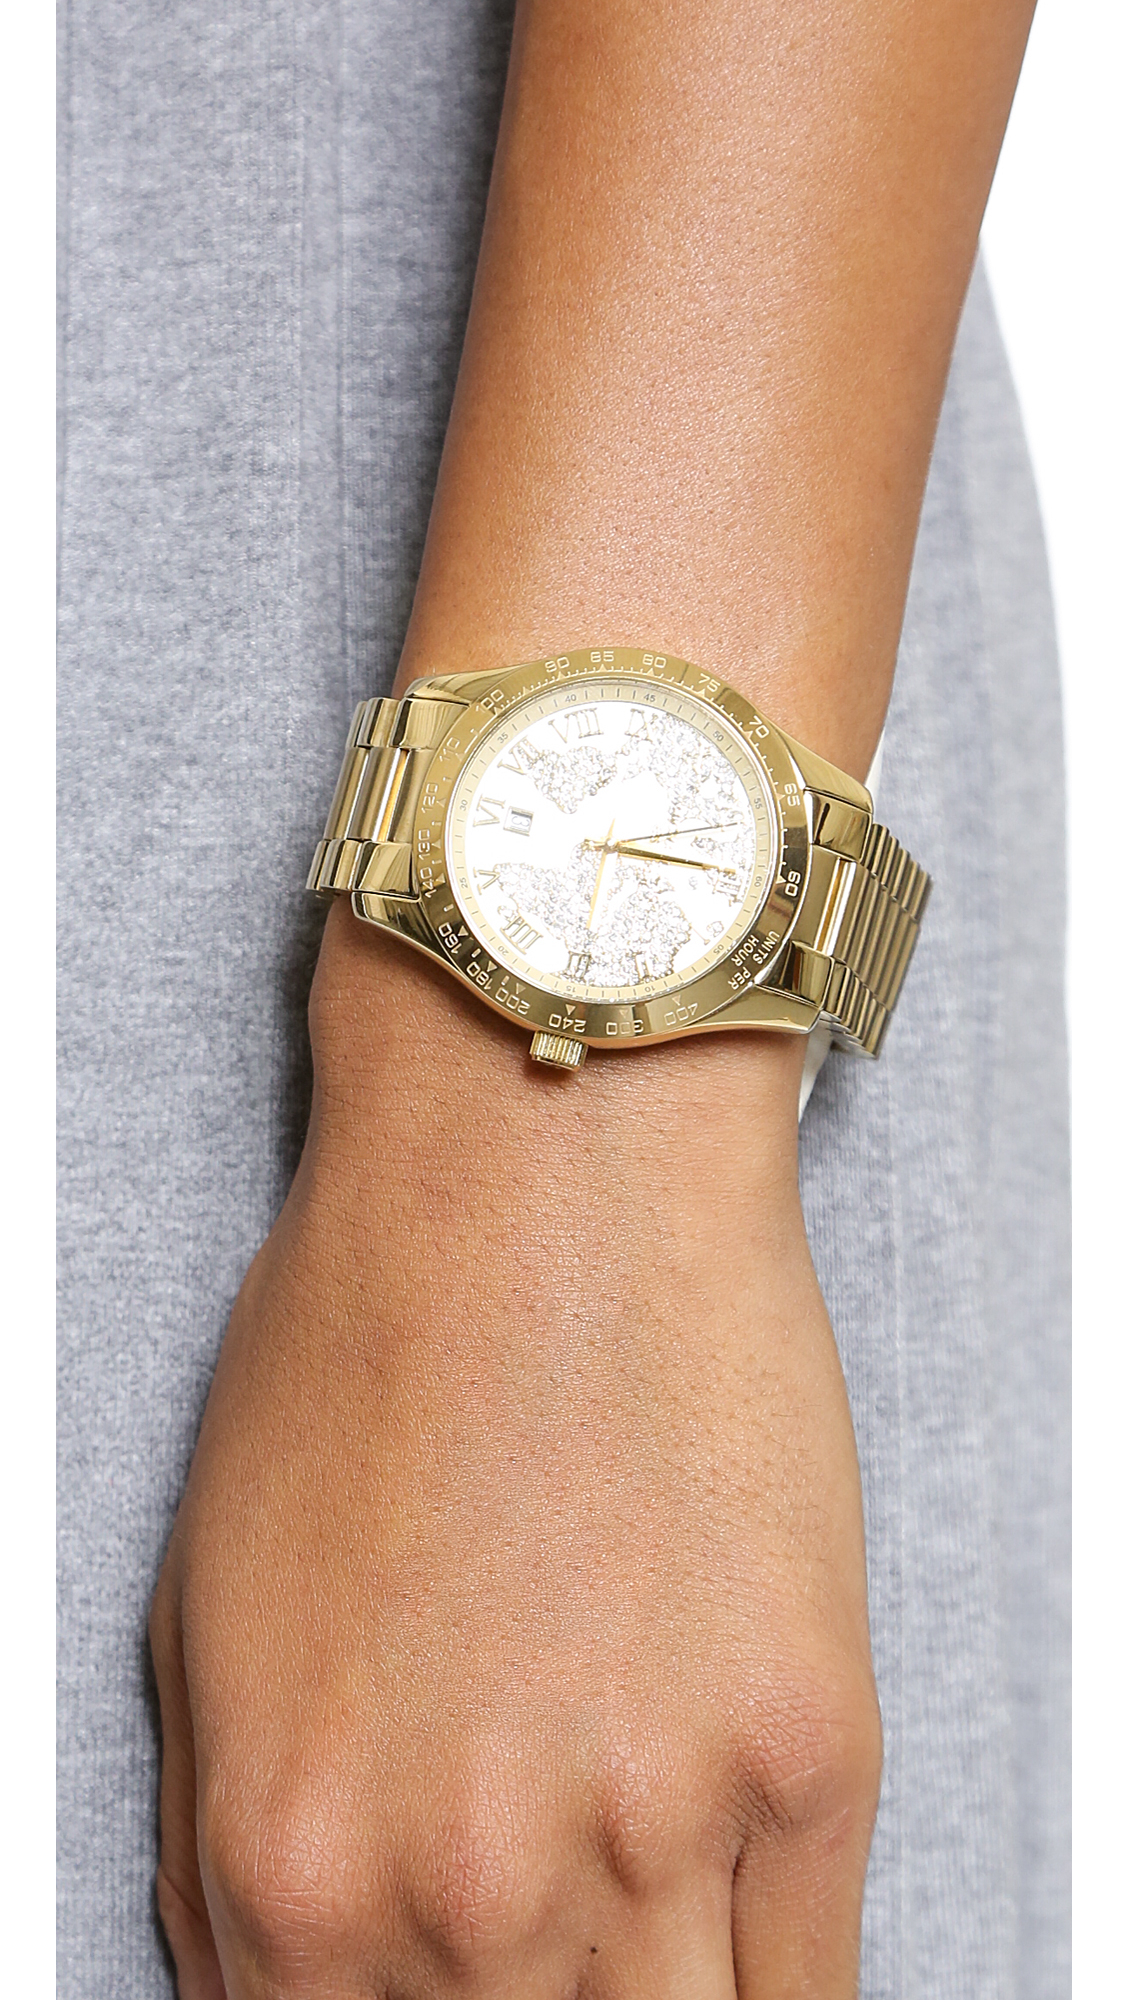 Lyst michael kors global glam layton watch gold in metallic gallery gumiabroncs Images